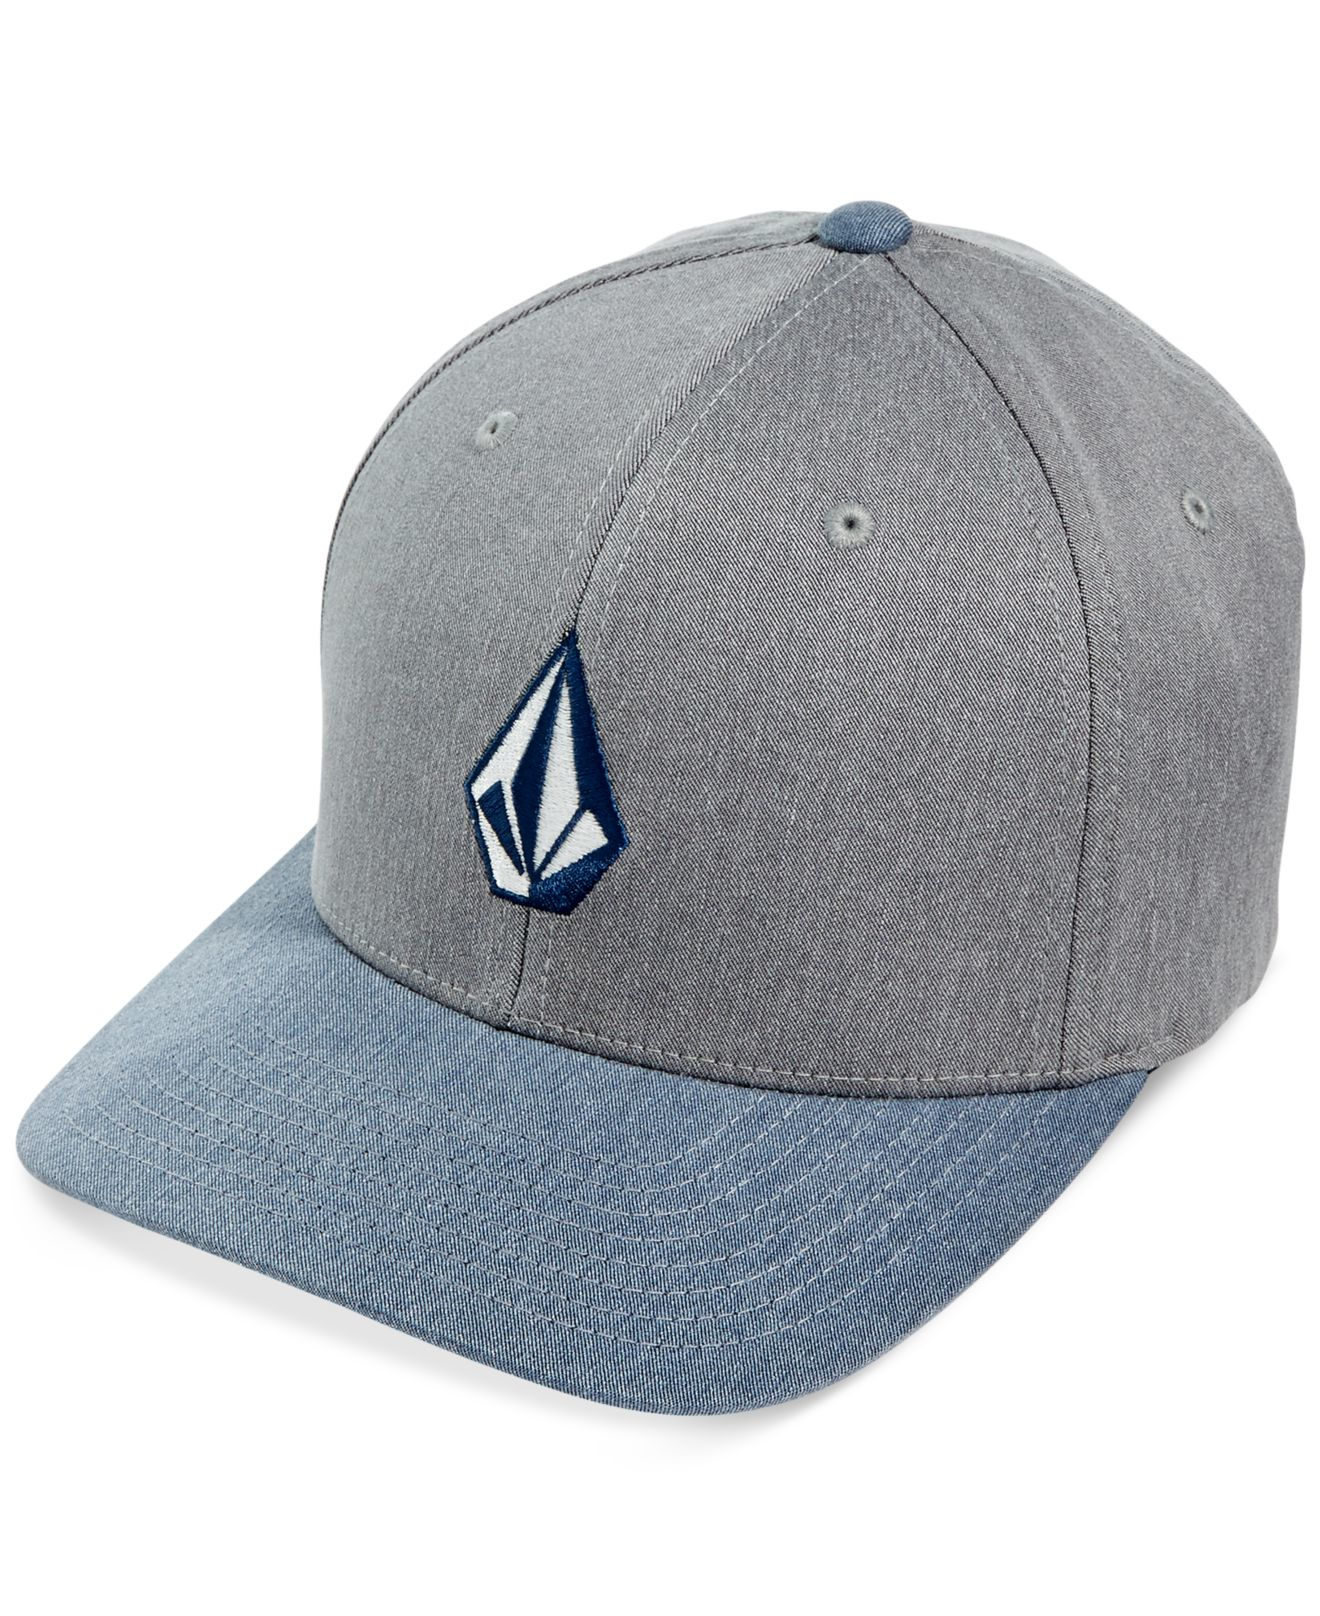 40989d482aa volcom-navy-full-stone-embroidered-logo-hat -blue-product-0-032820627-normal.jpeg